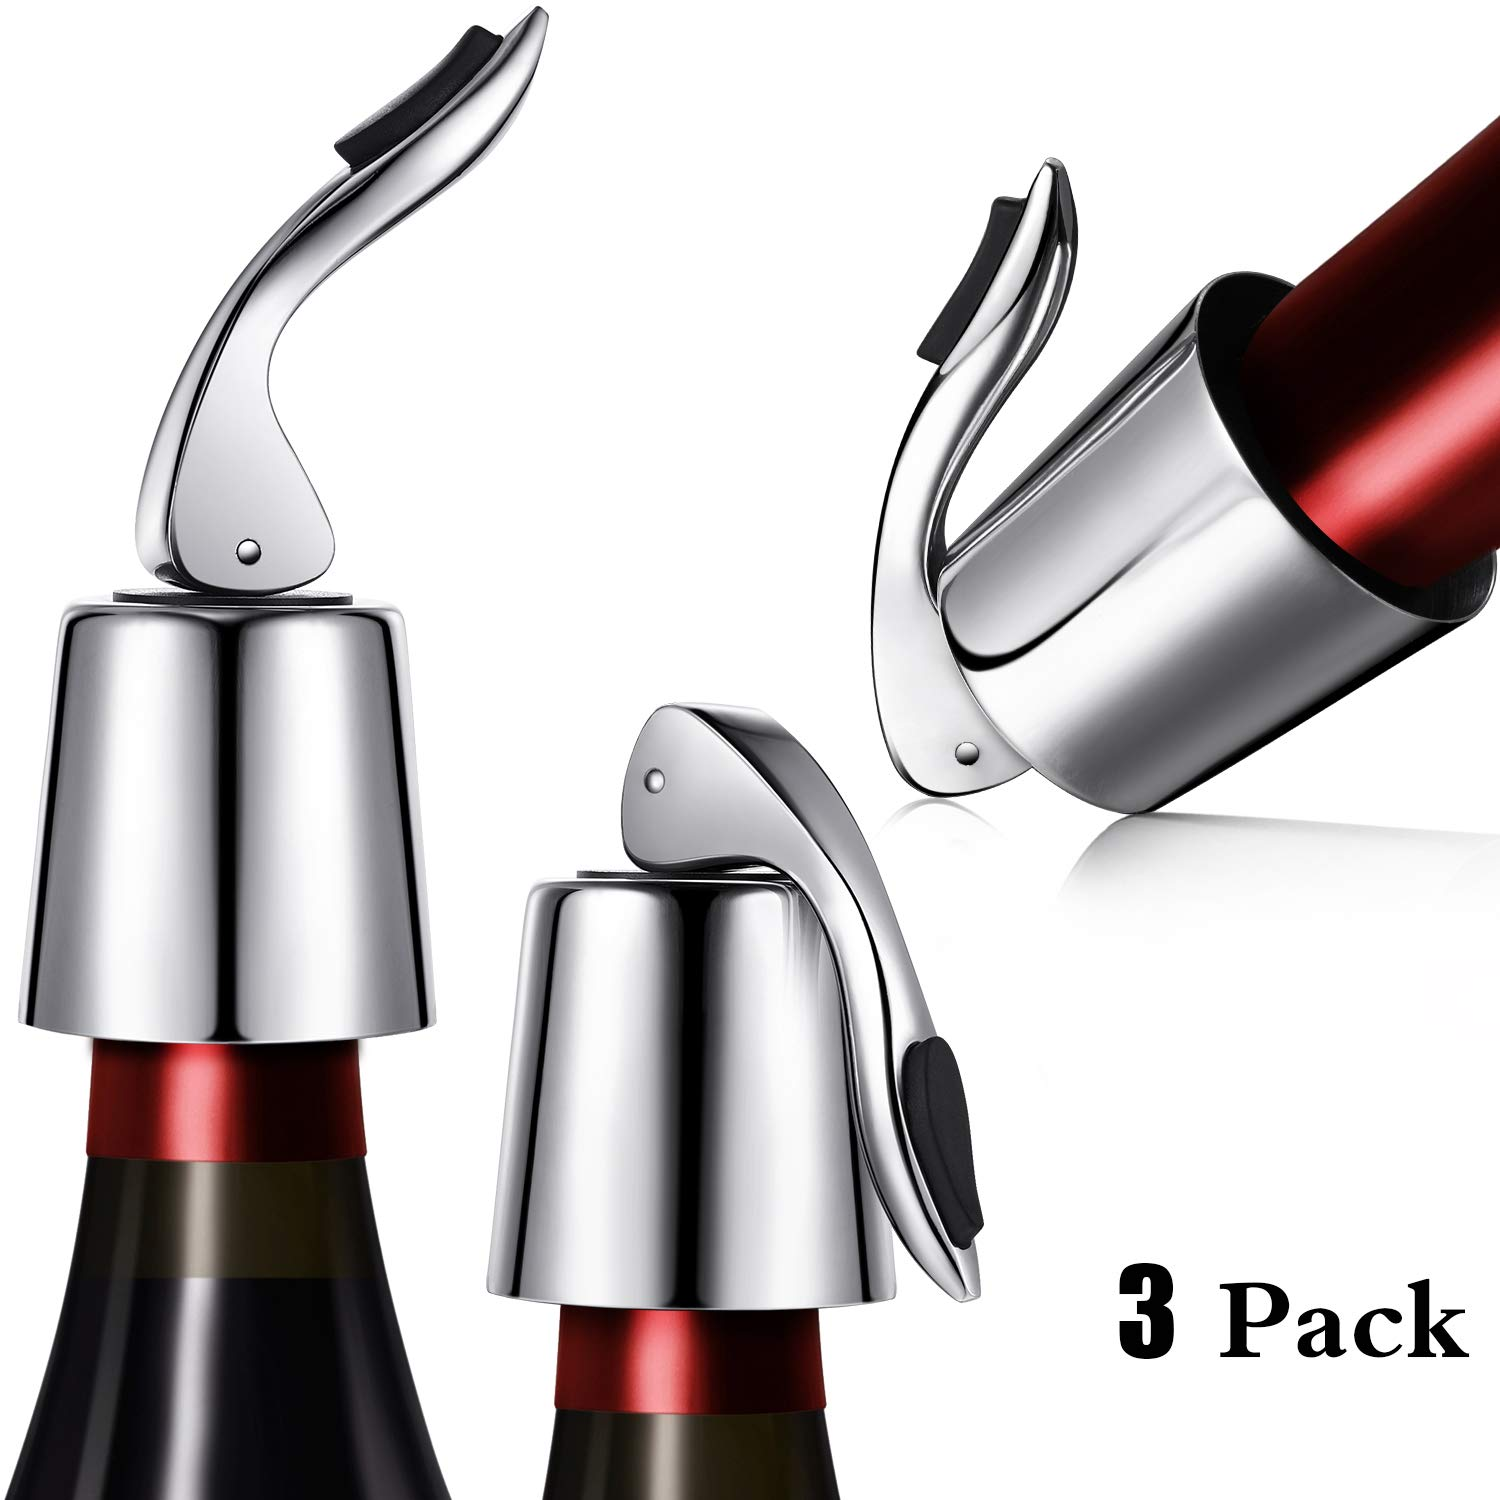 Zhanmai Stainless Steel Wine Stoppers Bottle Stoppers Vacuum Bottle Sealer Bottle Plug with Inner Rubber 1.6 x 3.7 inches (Silver) by Zhanmai